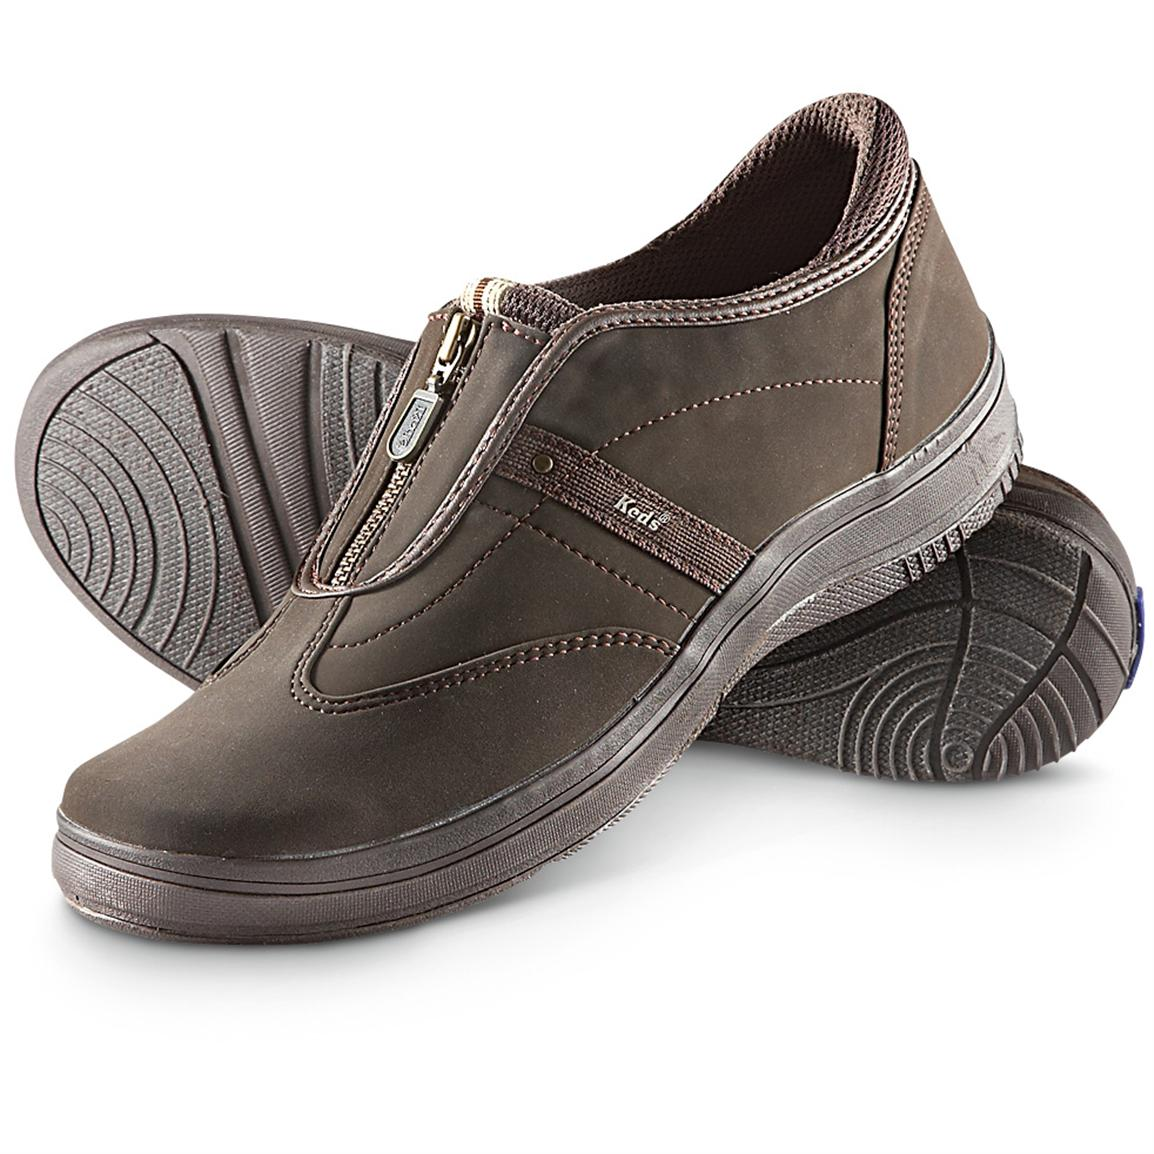 Born Shoes blend refined classic style with extraordinary comfort and craftsmanship. Buy Born Shoes and always get Free Shipping and Easy Returns. Shop Securely.